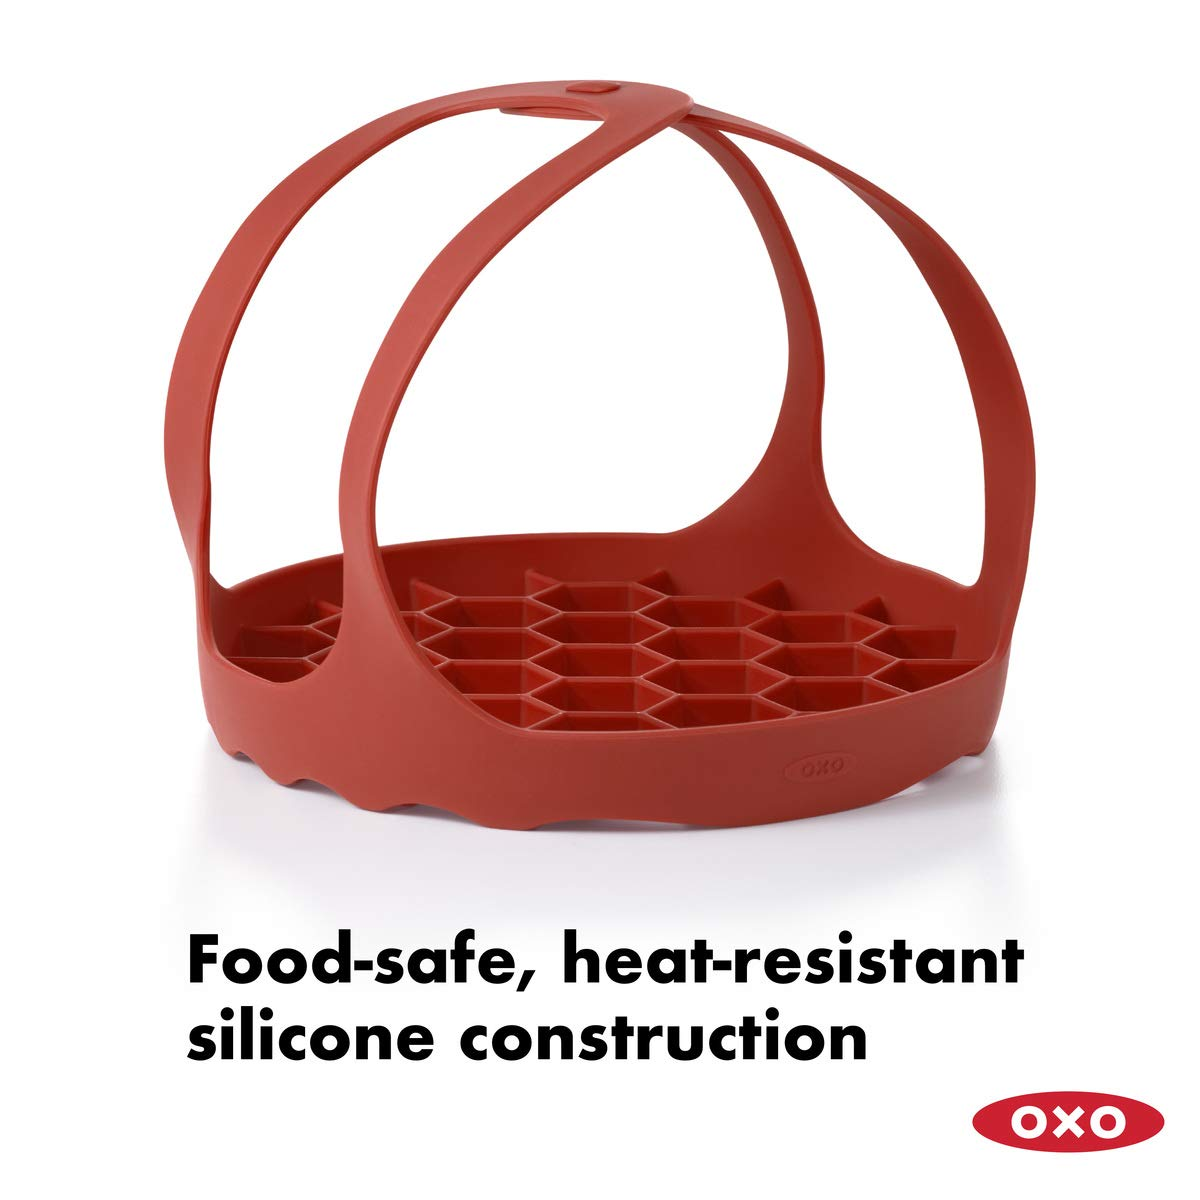 OXO Good Grips Silicone Pressure Cooker Roasting Rack